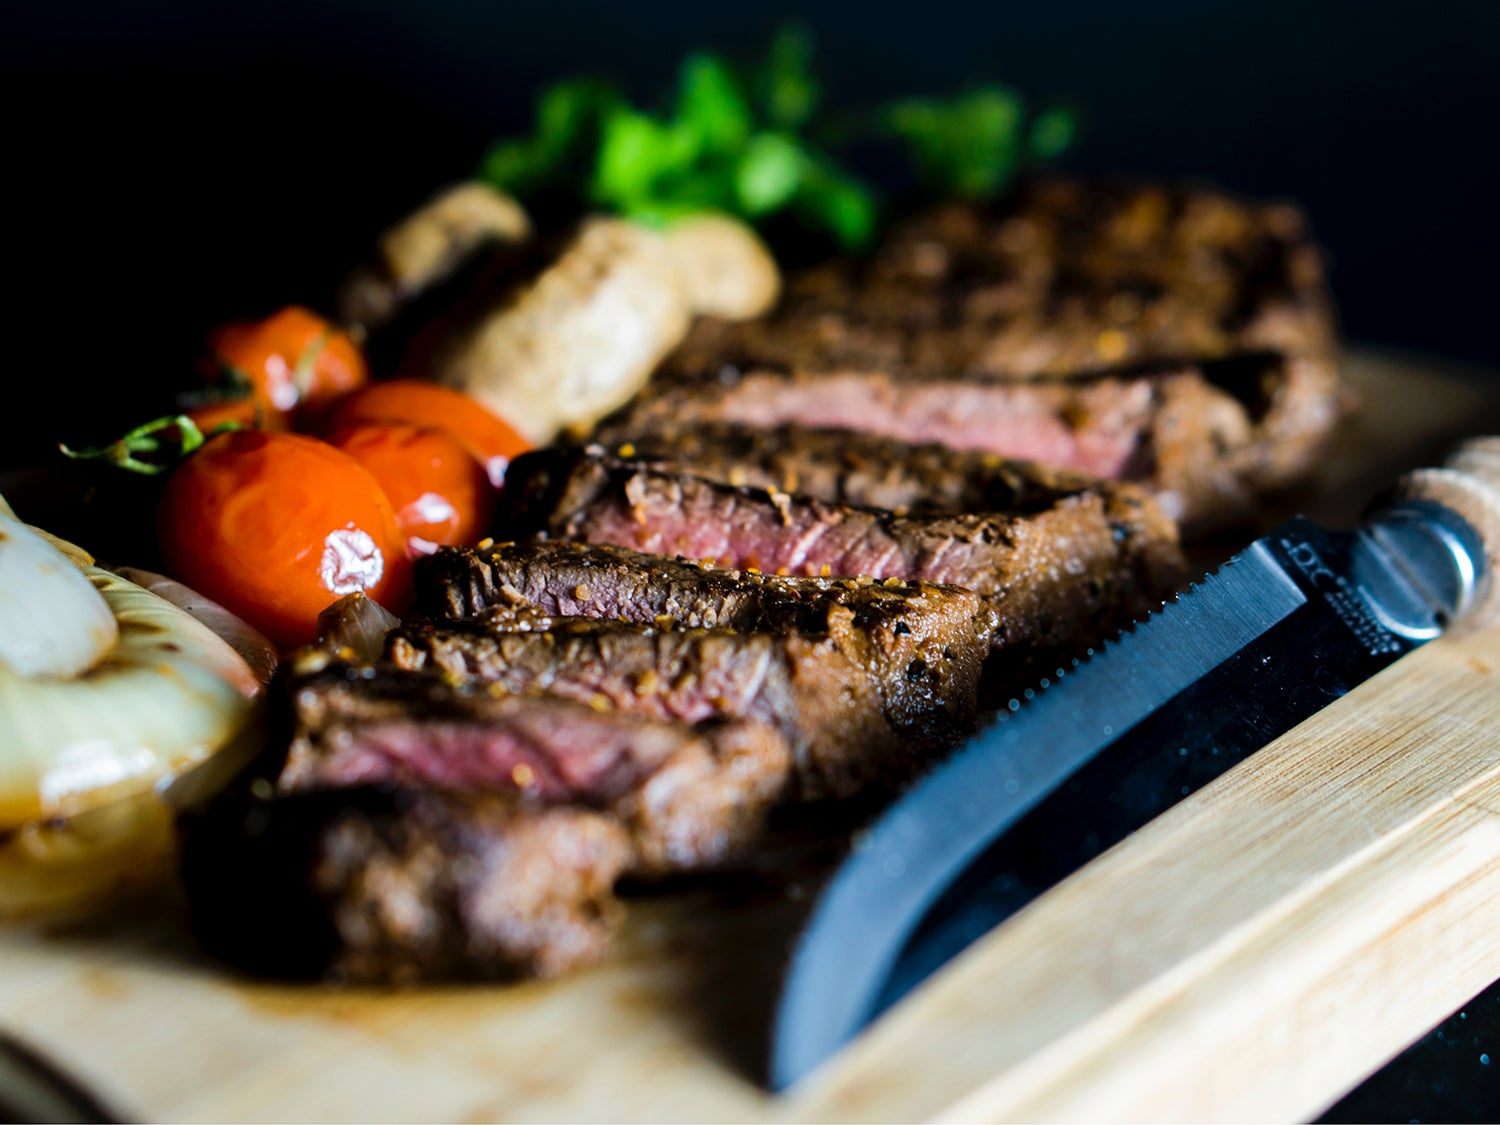 Cooked and cut steak on the cutting board